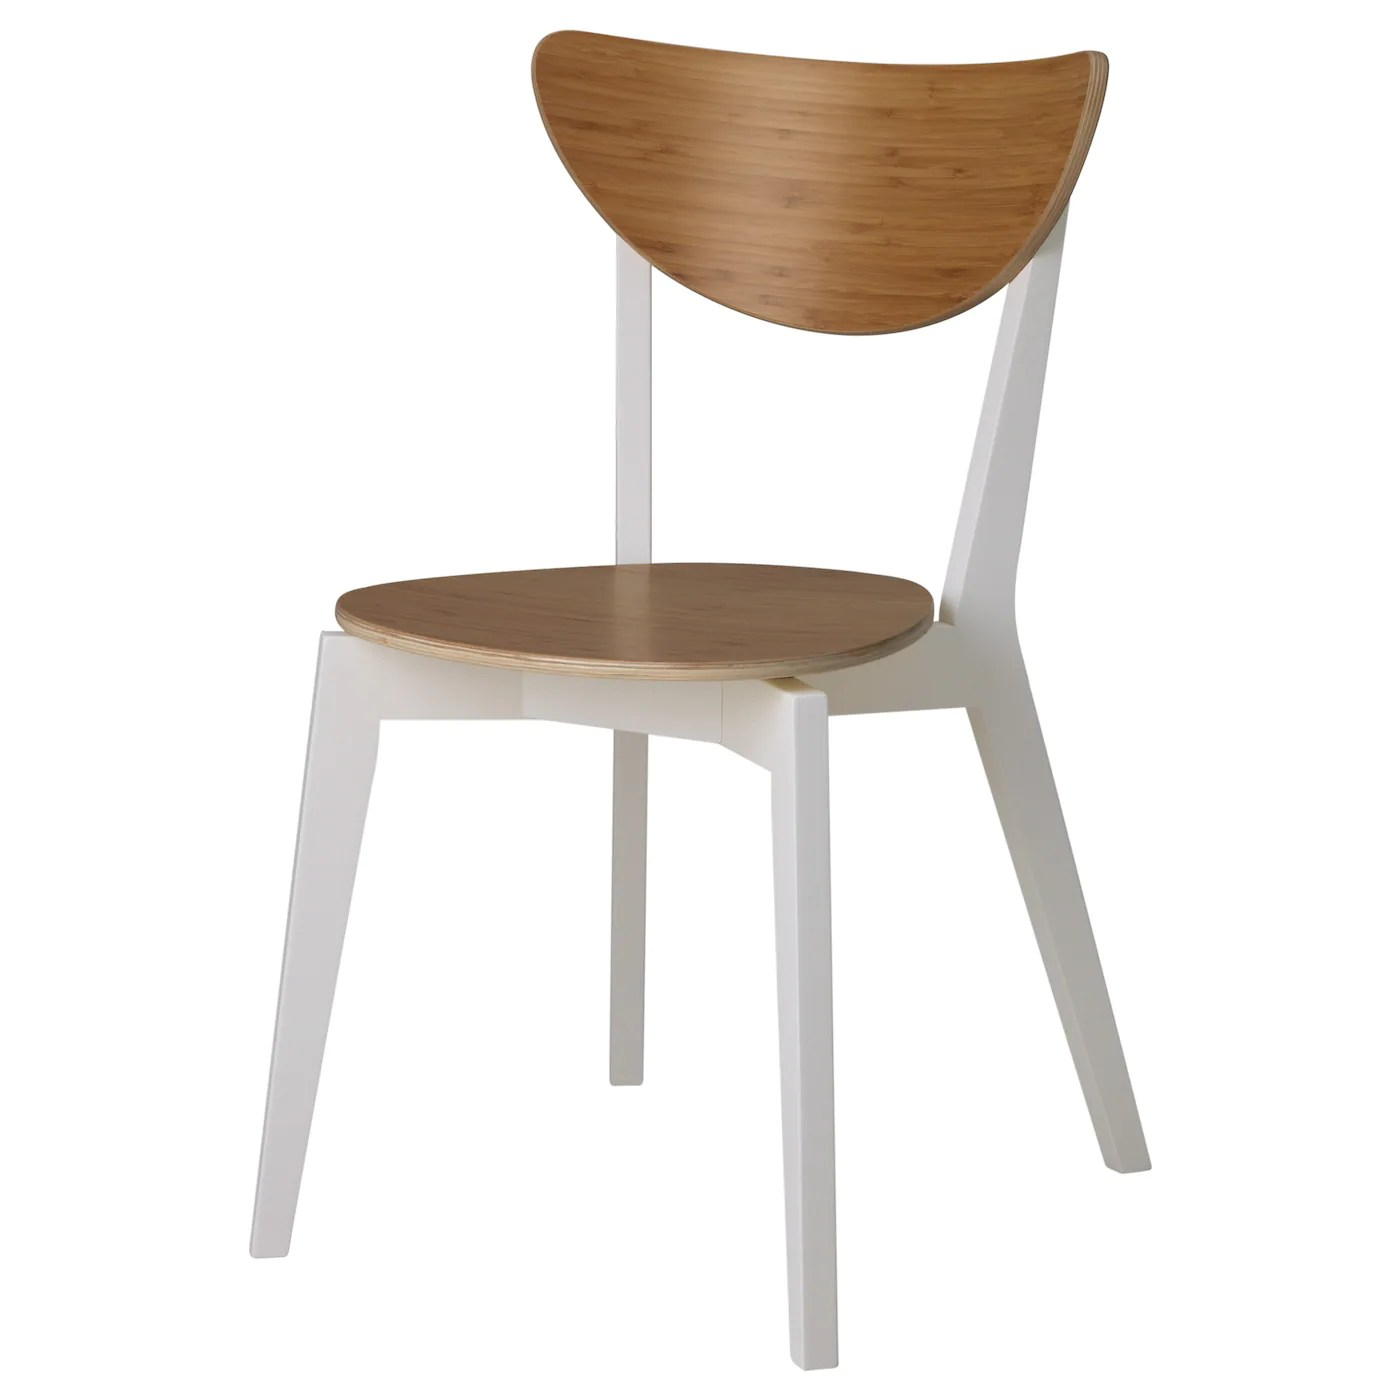 Dining Chairs Ikea Nordmyra Chair Bamboo White